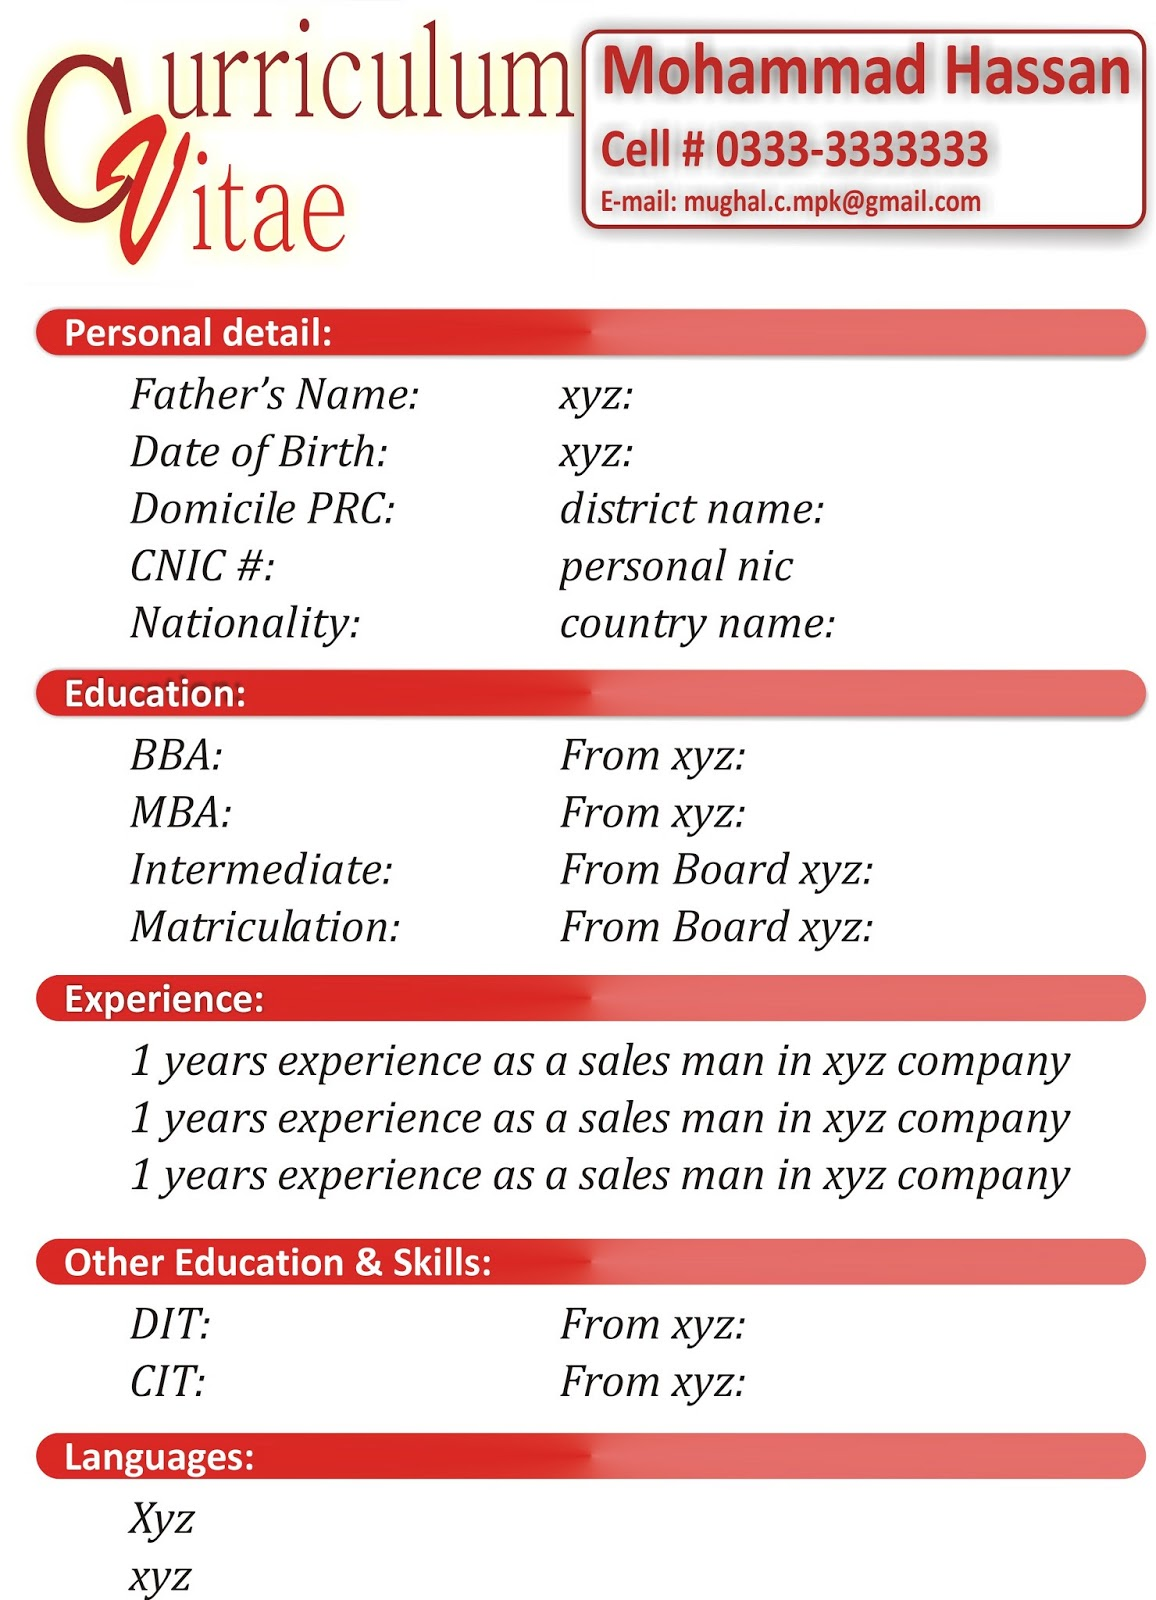 curriculum vitae format in ms powerpoint sample resume curriculum vitae format in ms powerpoint cv templates curriculum vitae template cv template related post